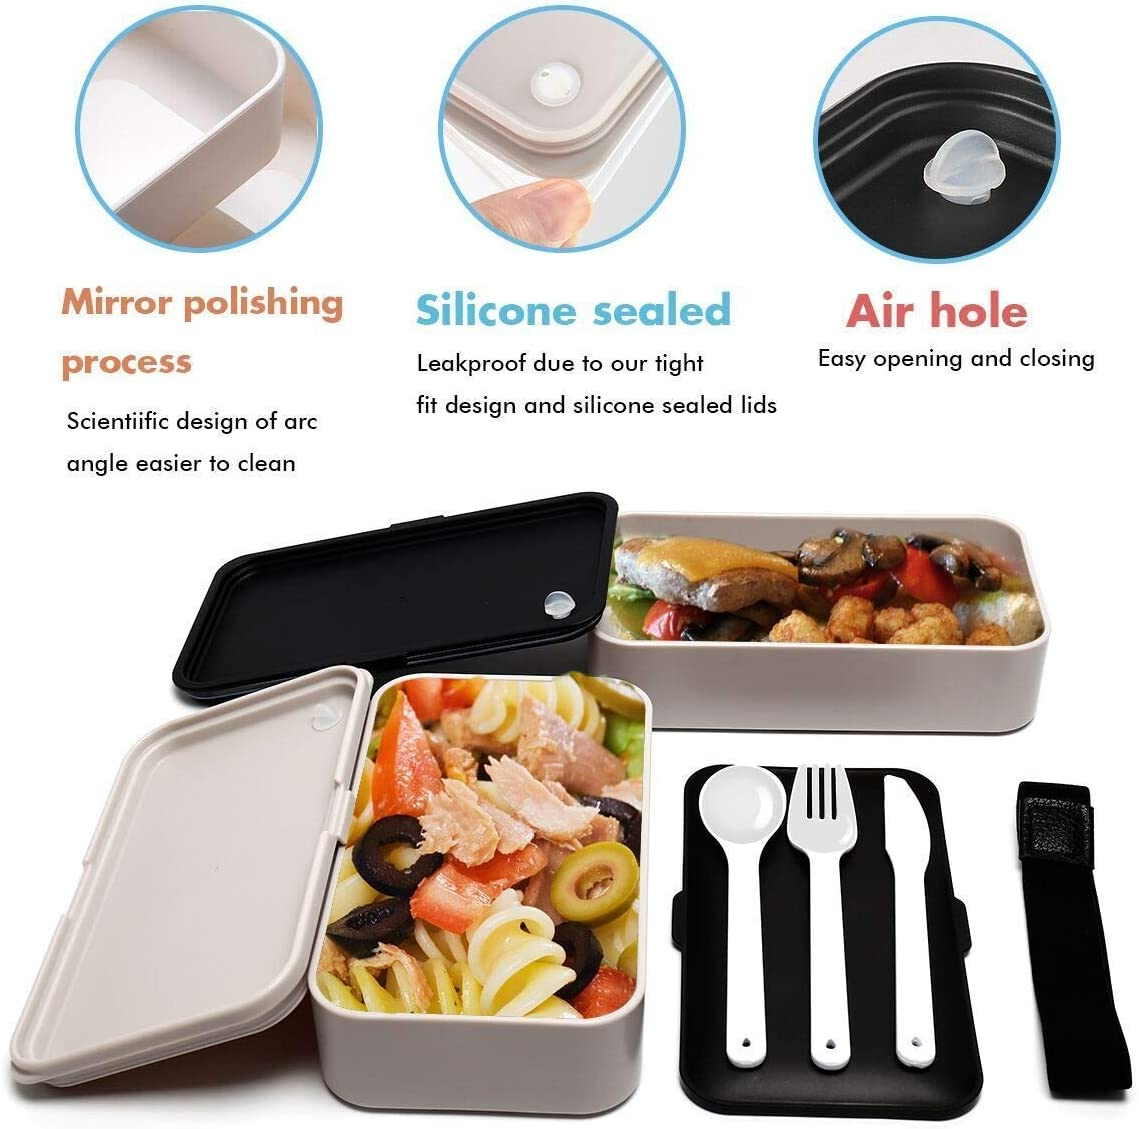 Portion Control Original Lunch Box with Free Lunch Bag Utensils Microwave and Dishwasher Safe Bento Box Leakproof Lunch Container Divider Black